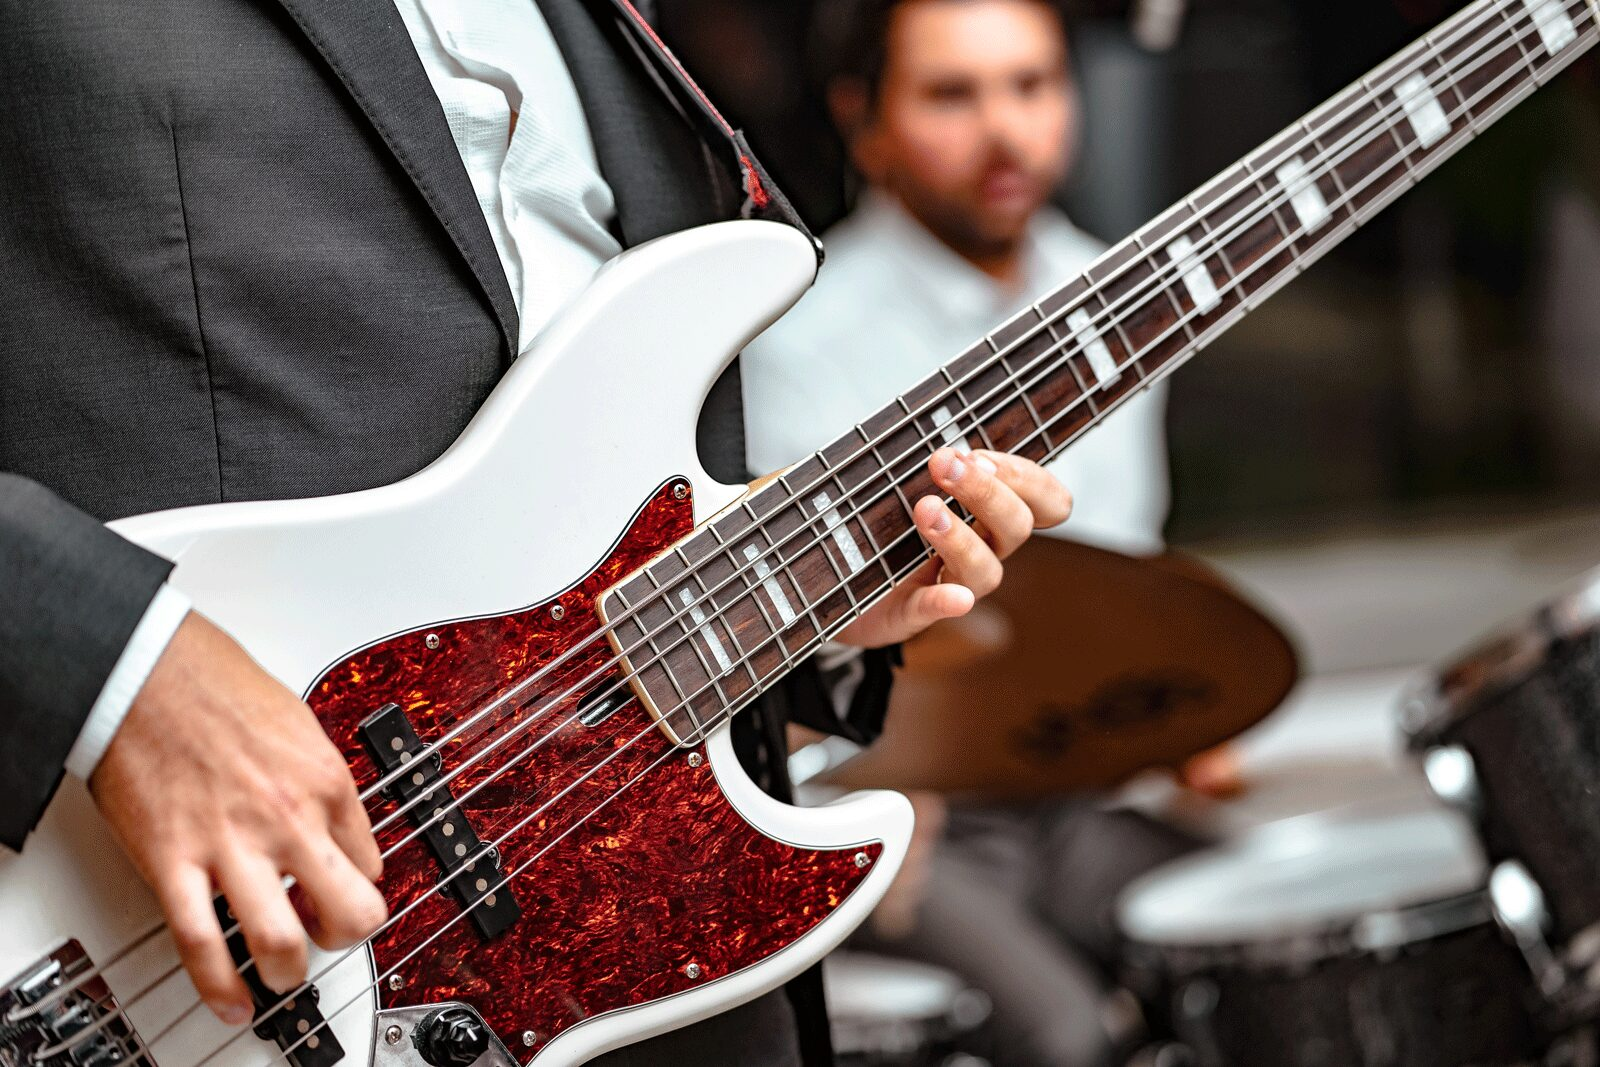 Playing Bass Guitar   The Top 5 Techniques For Practicing Bass Guitar